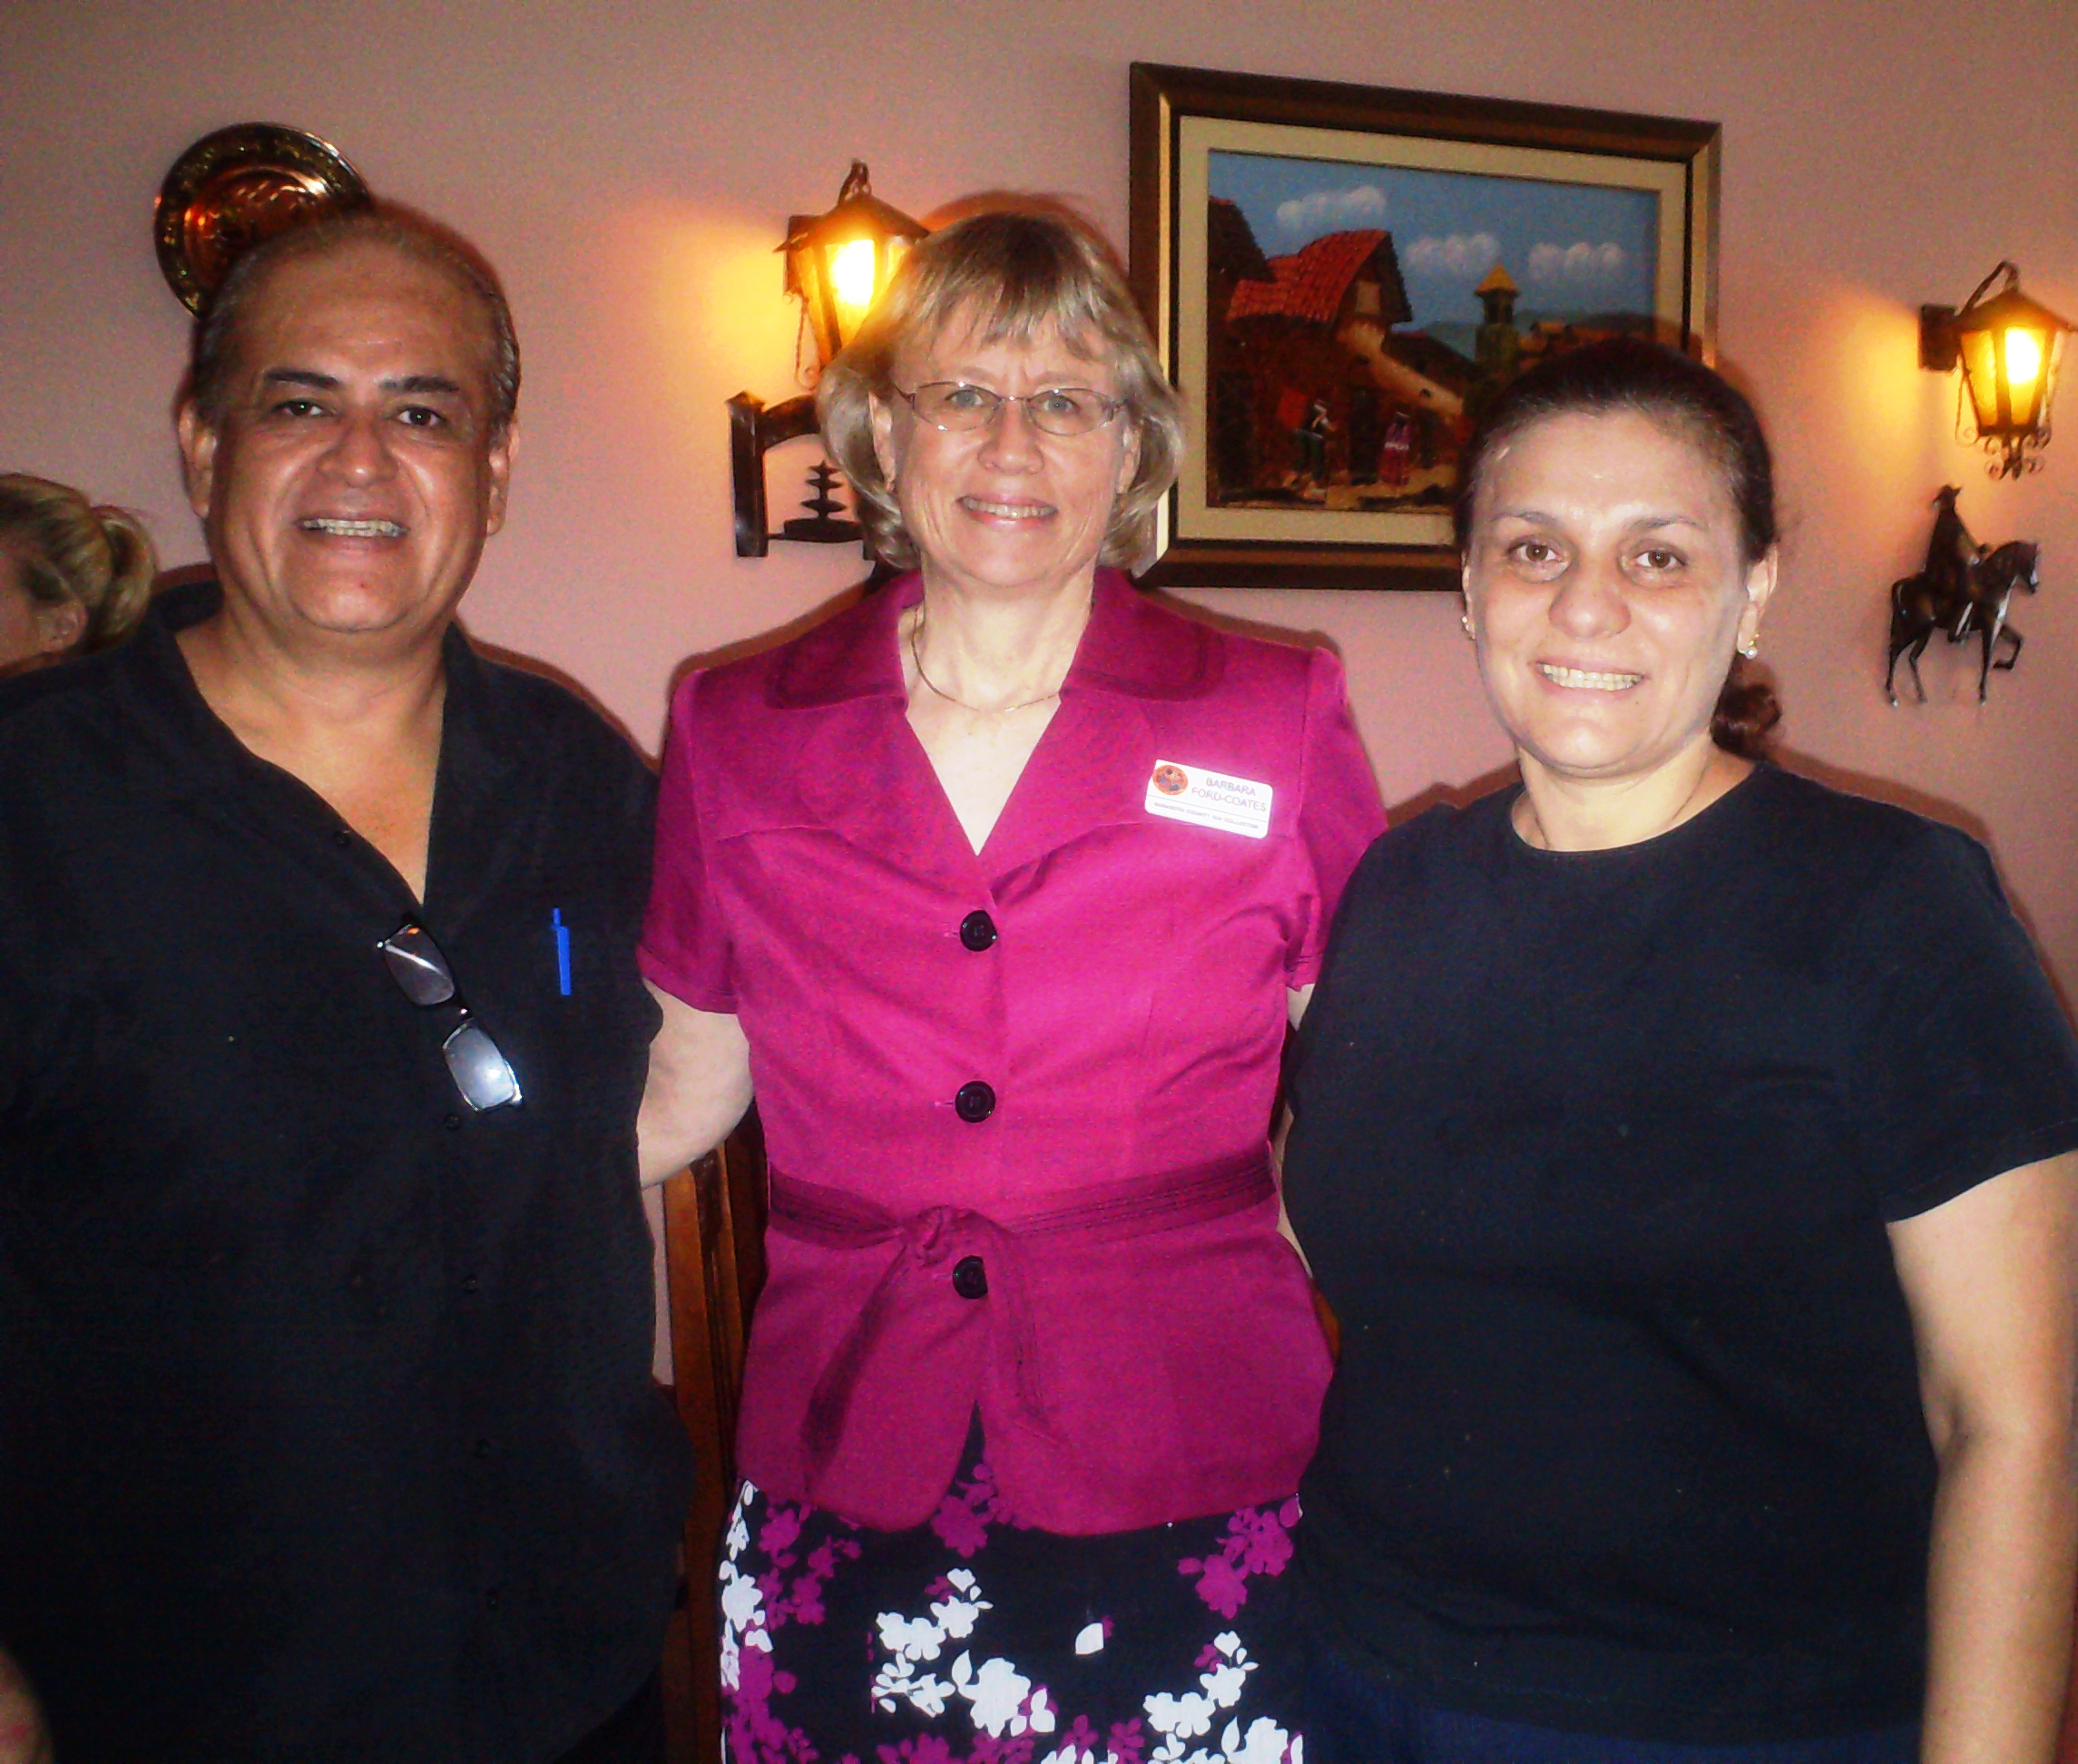 Latin Chamber Power Lunch, El Patio Latino. Left: Barbara Pictured With  Luis Regalado U0026 Cesar Gomez. Right: Barbara Pictured With Owners Of El  Patio Latino.